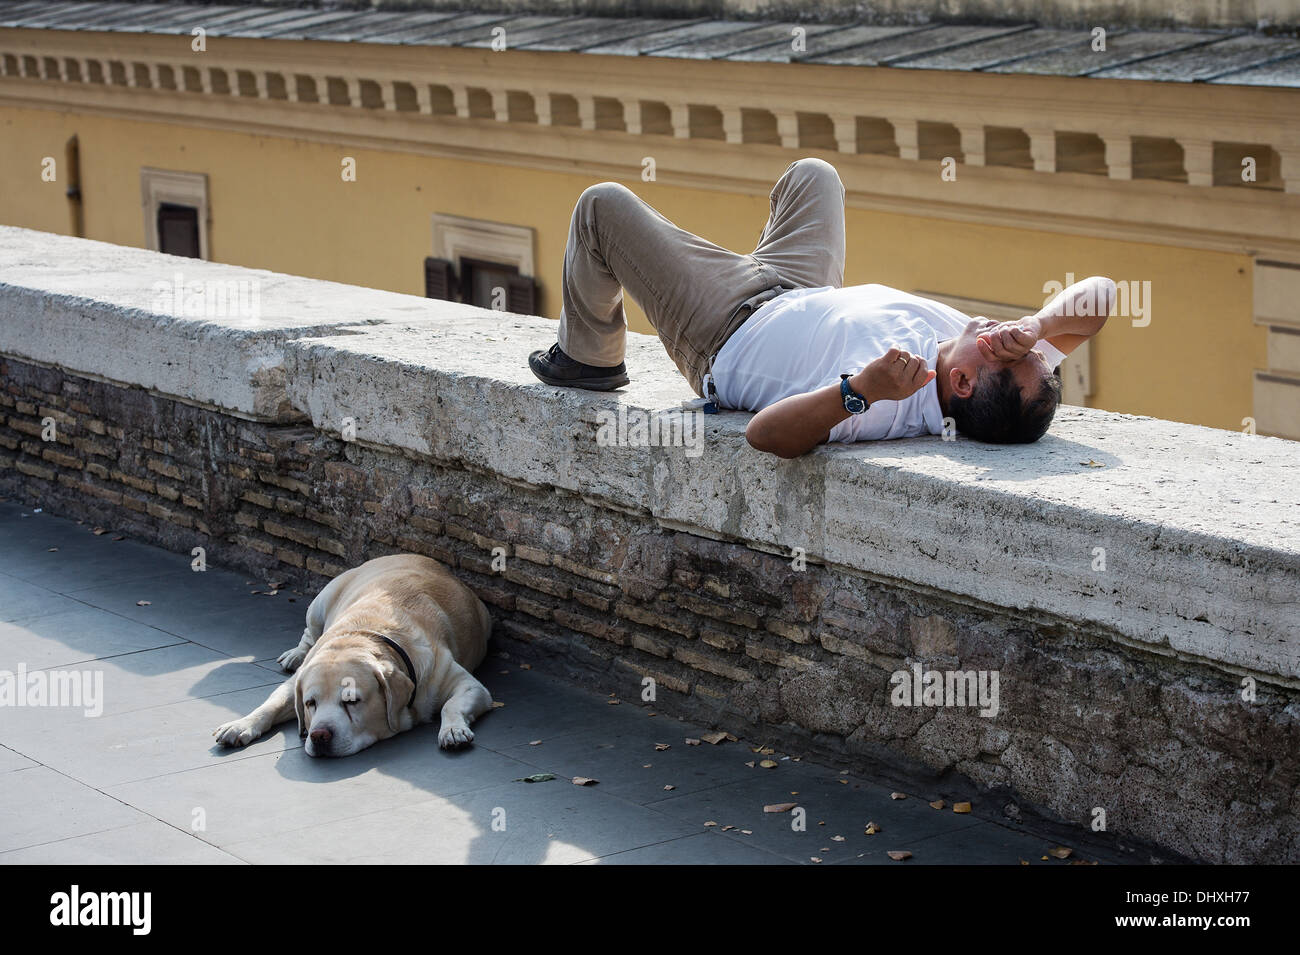 Man and dog take an afternoon break, Rome, Italy - Stock Image